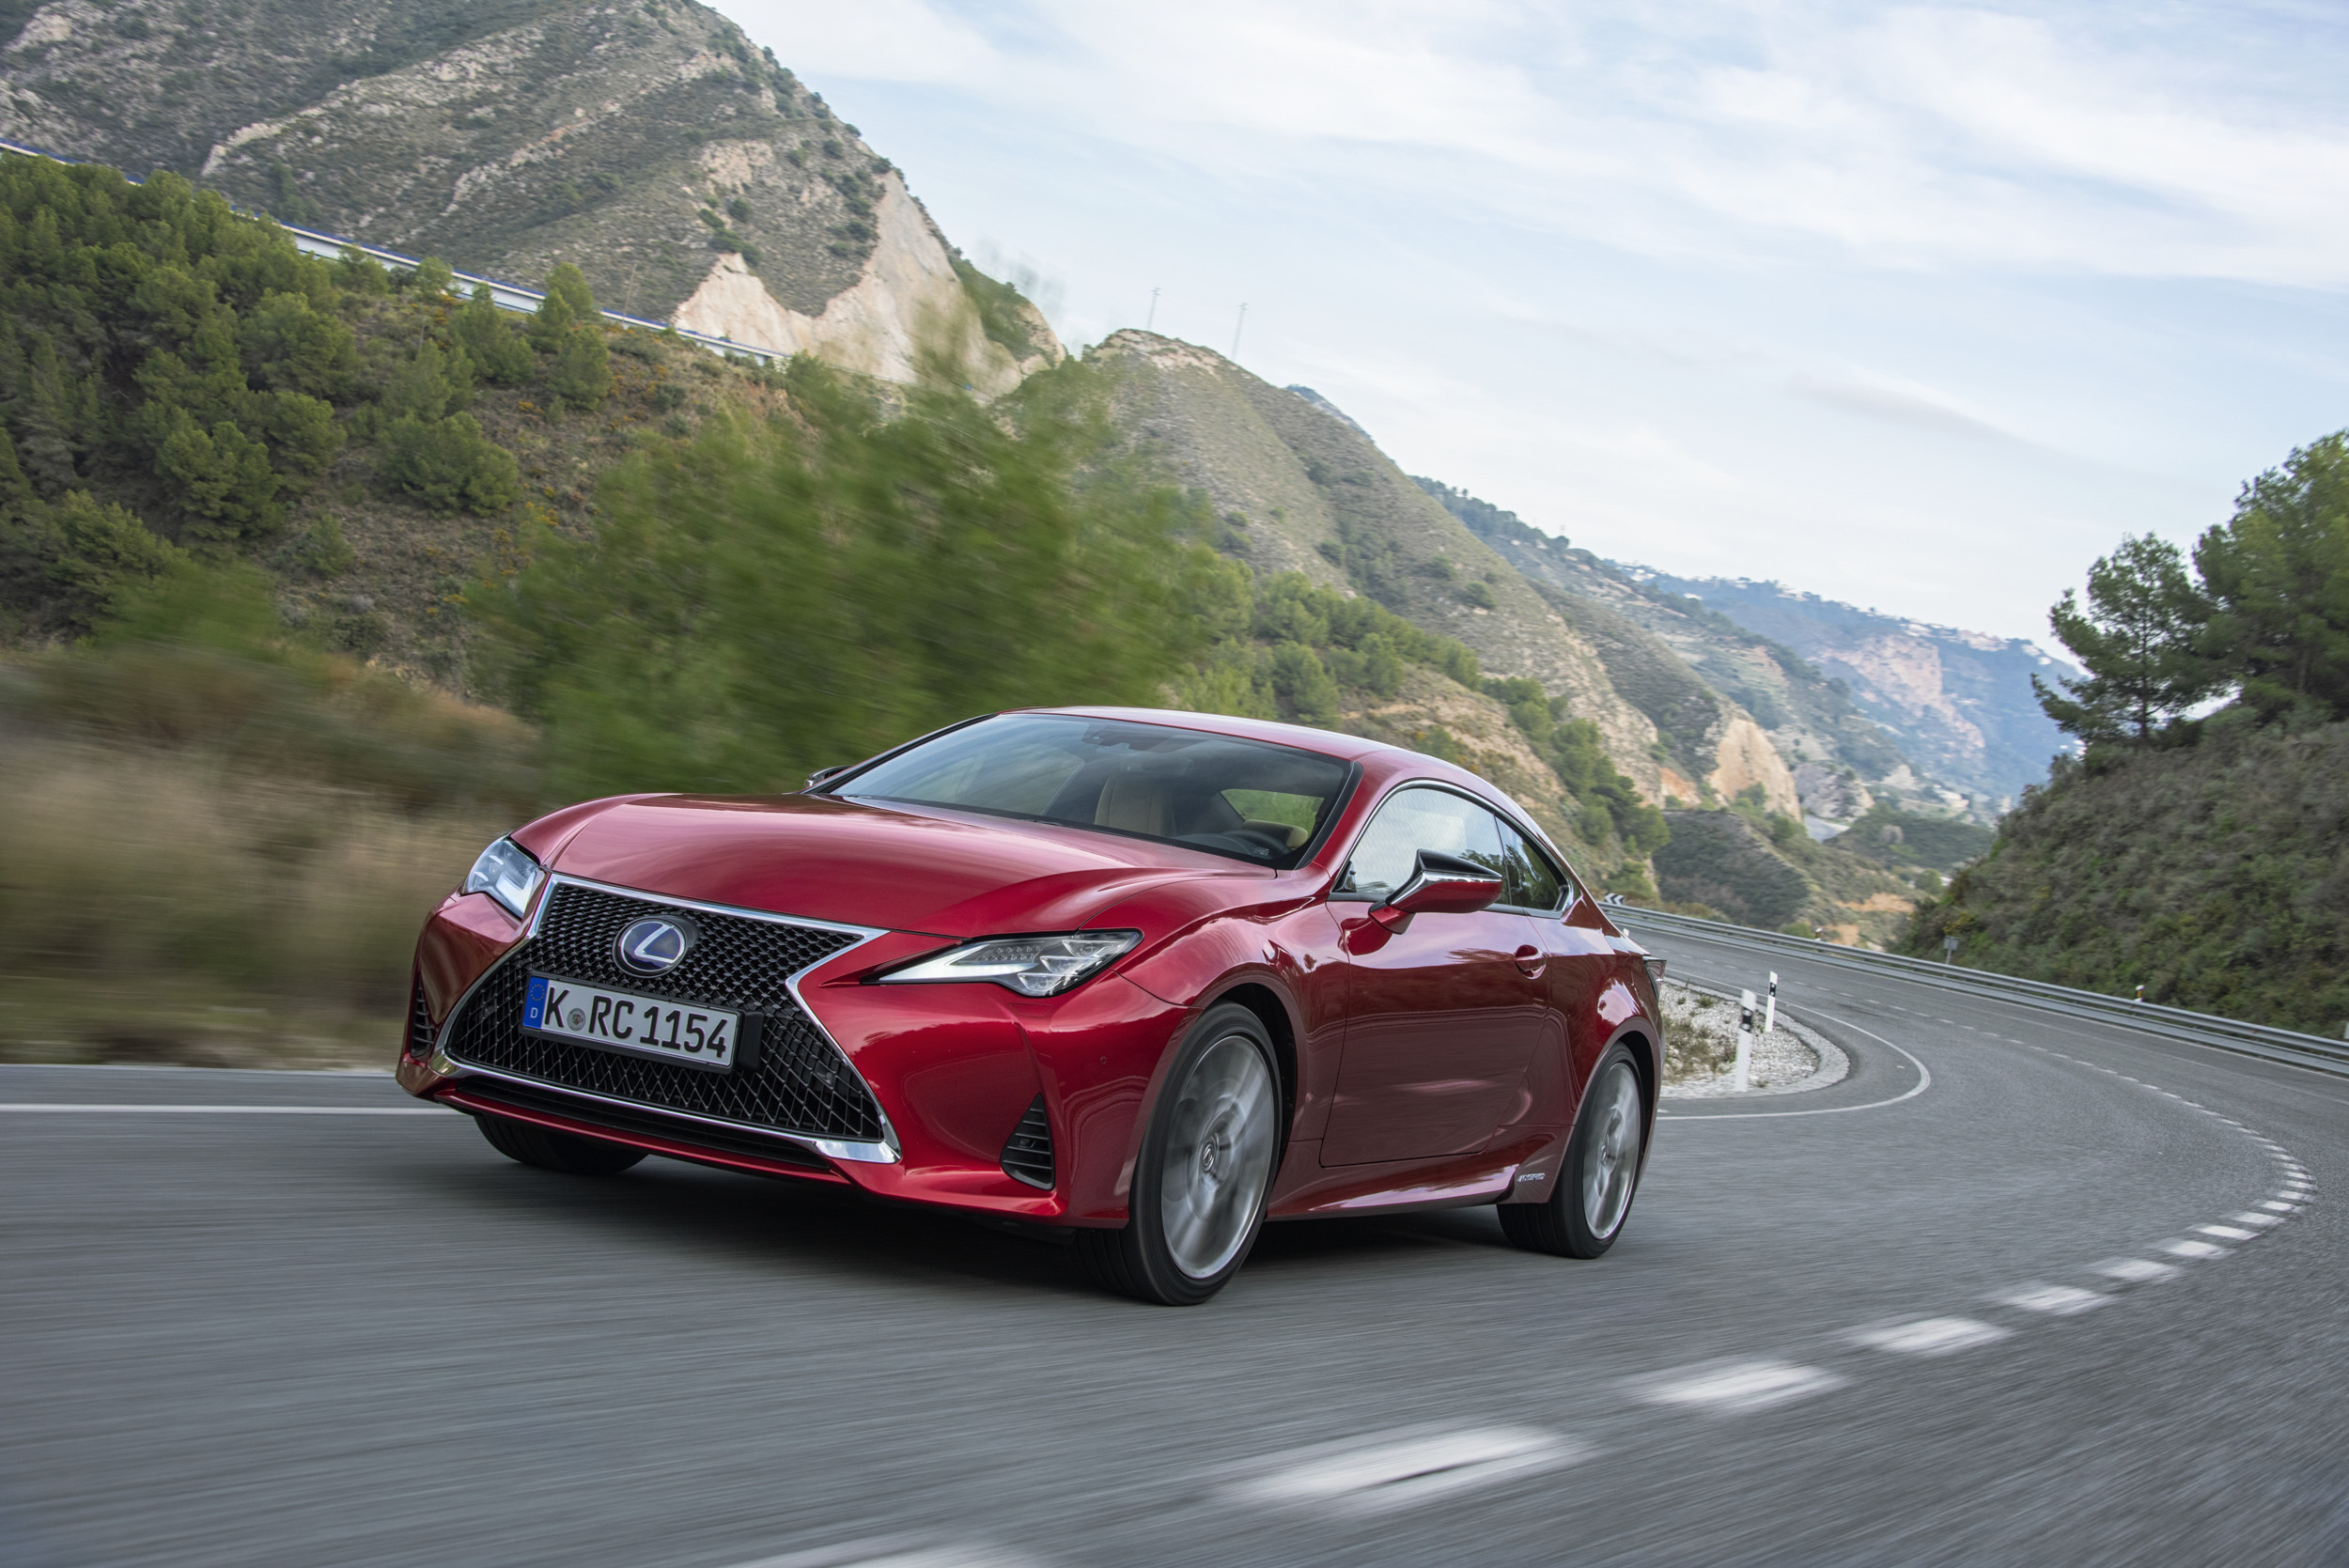 Lexus RC 300h review - how does it compare to the C-class? | Evo